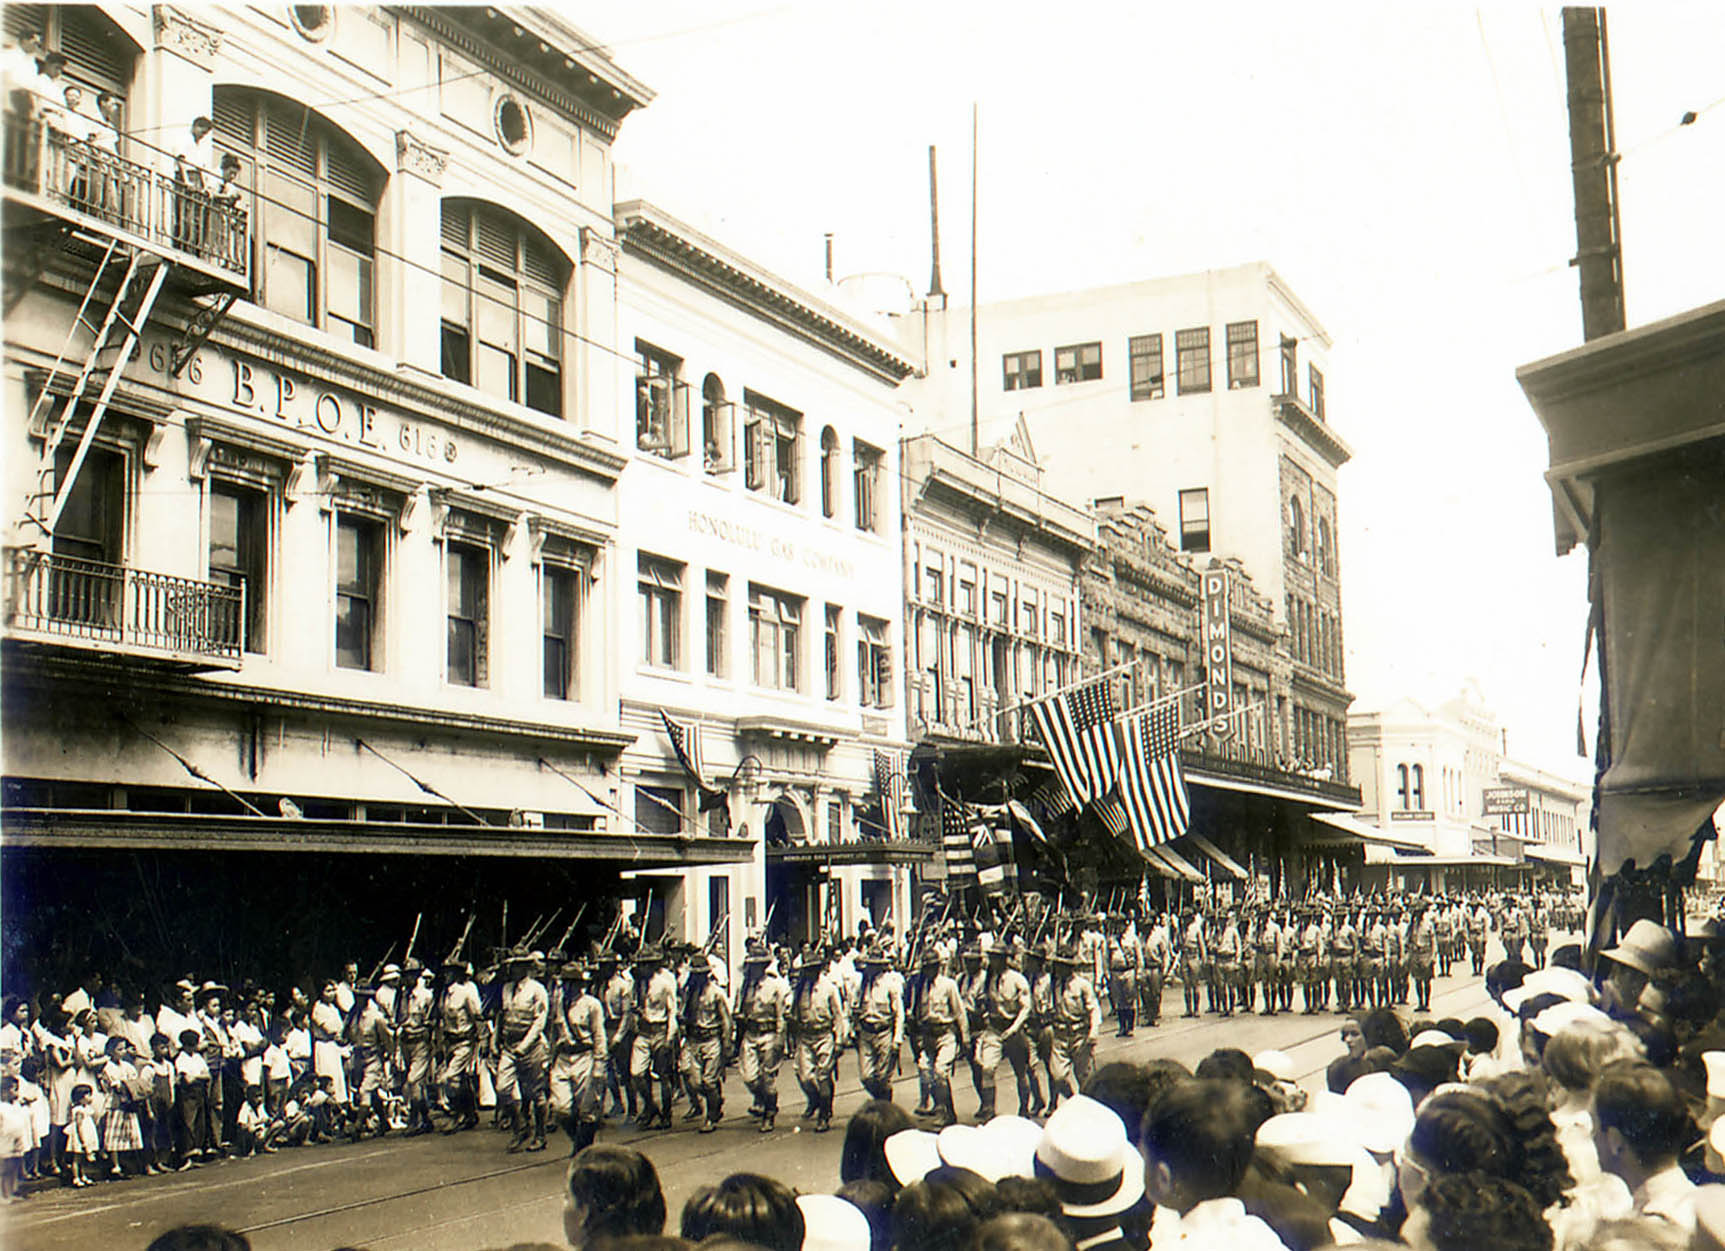 01.19 04 Parade in front of Elks Club